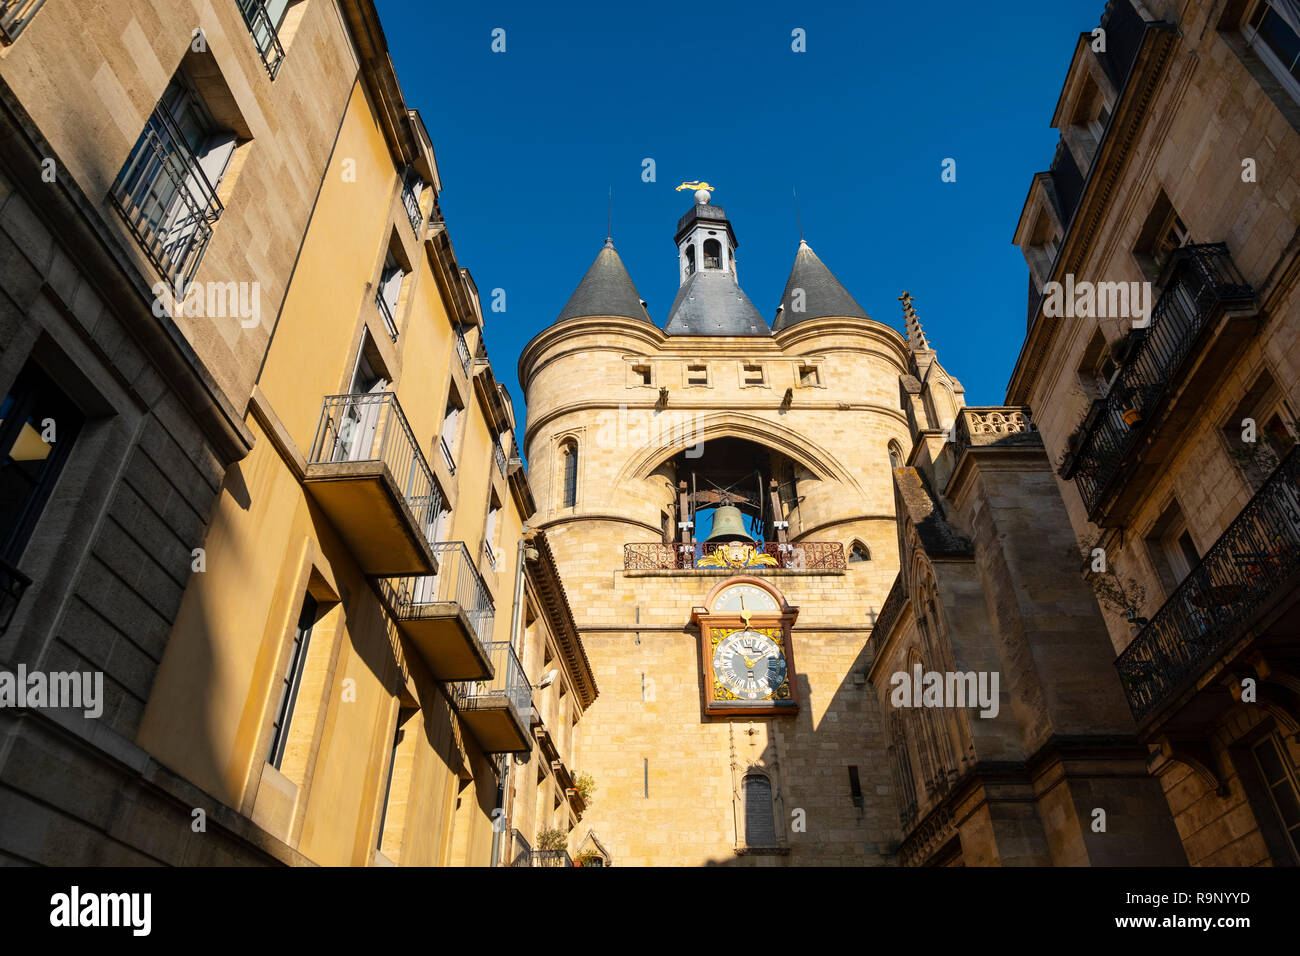 Clock tower, the Grosse cloche, Bordeaux, Gironde. Aquitaine region. France Europe. - Stock Image